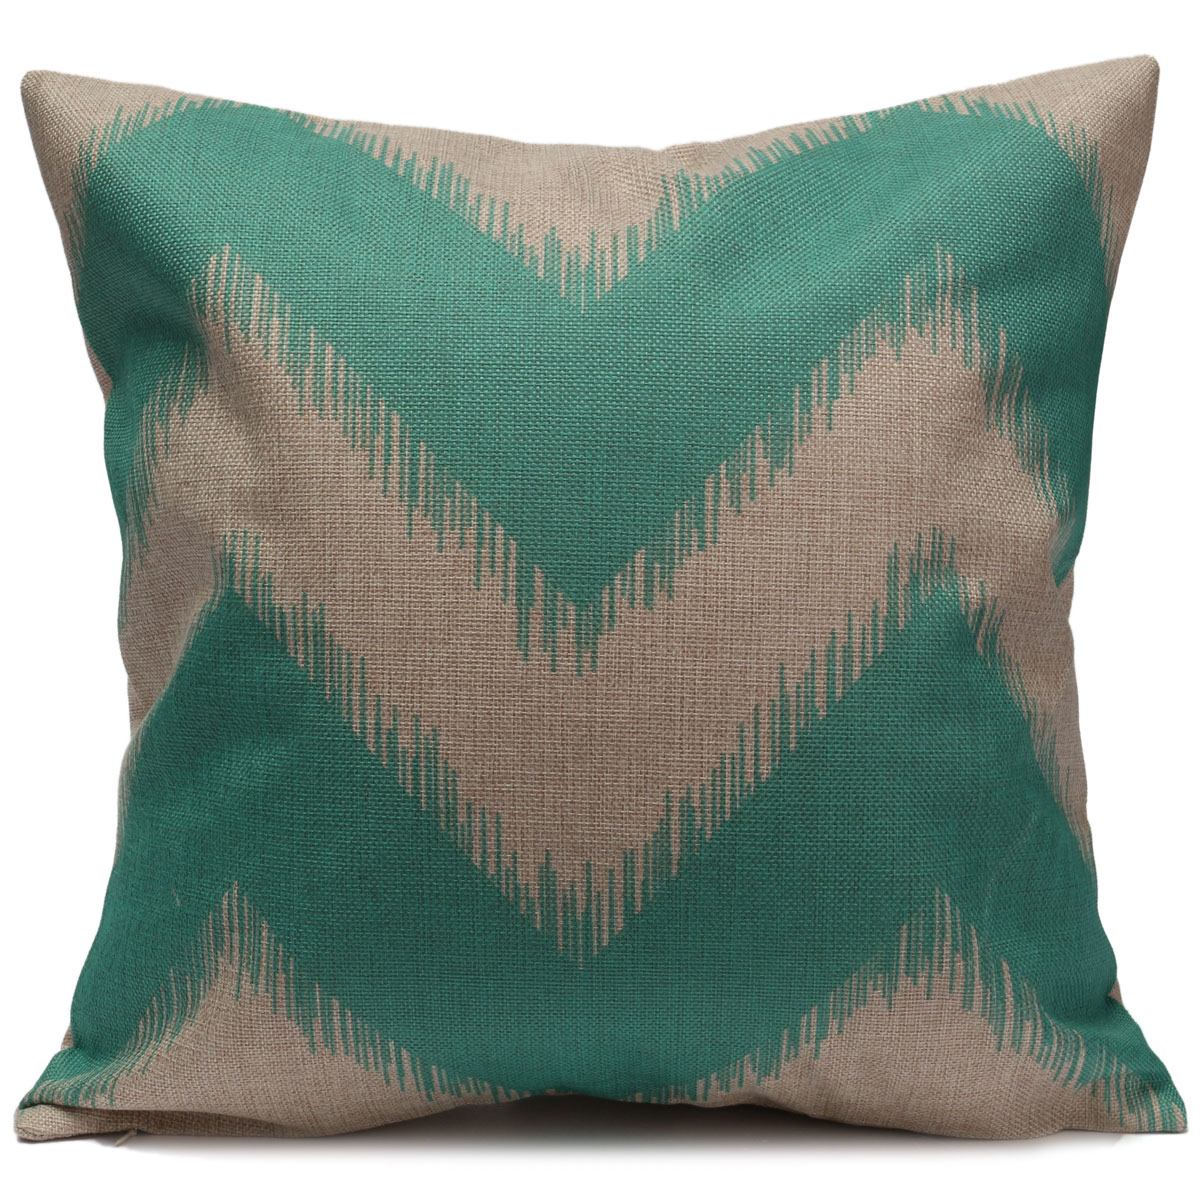 ZIG ZAG Wave Stripes Throw Pillow Case Square Cushion Cover Sofa CAR Home Decor eBay